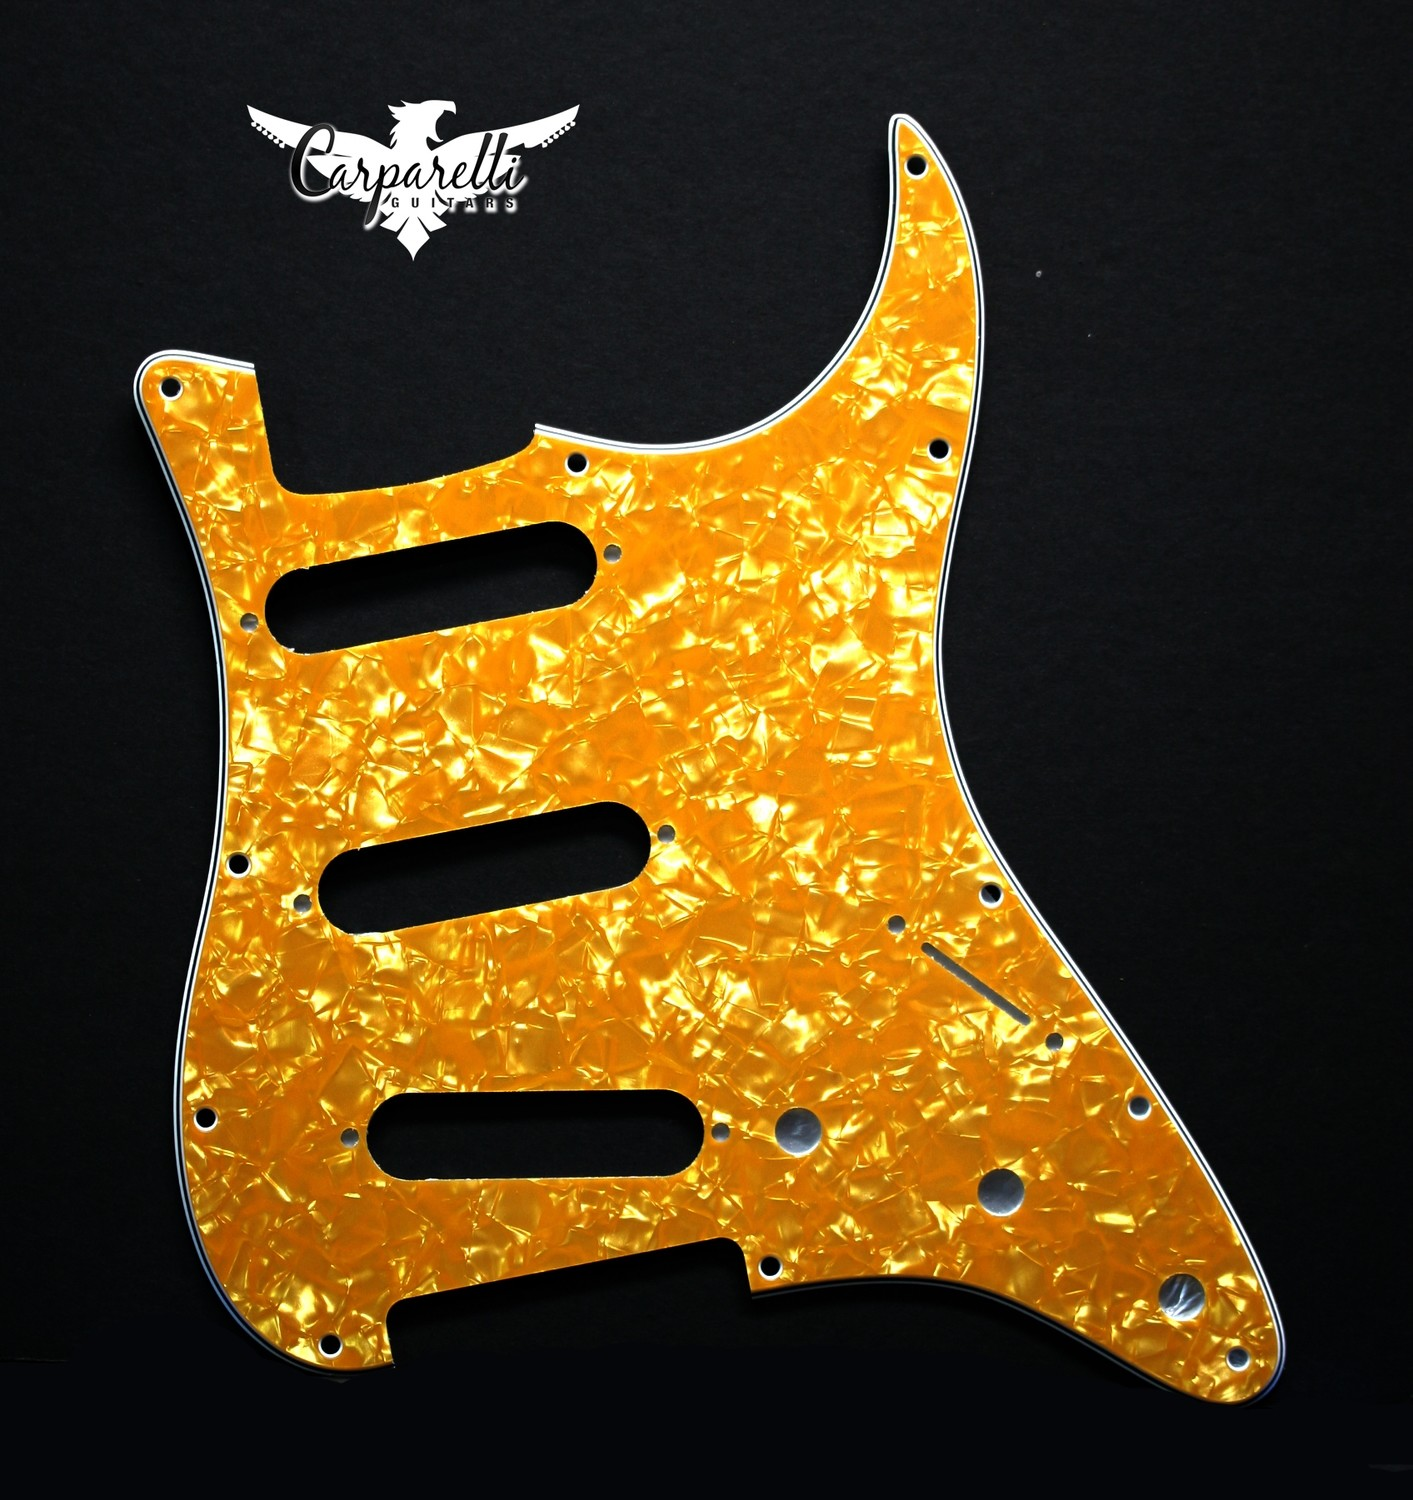 Carparelli SSS Strat® Pickguard 11 Holes 3 Ply Gold Pearloid